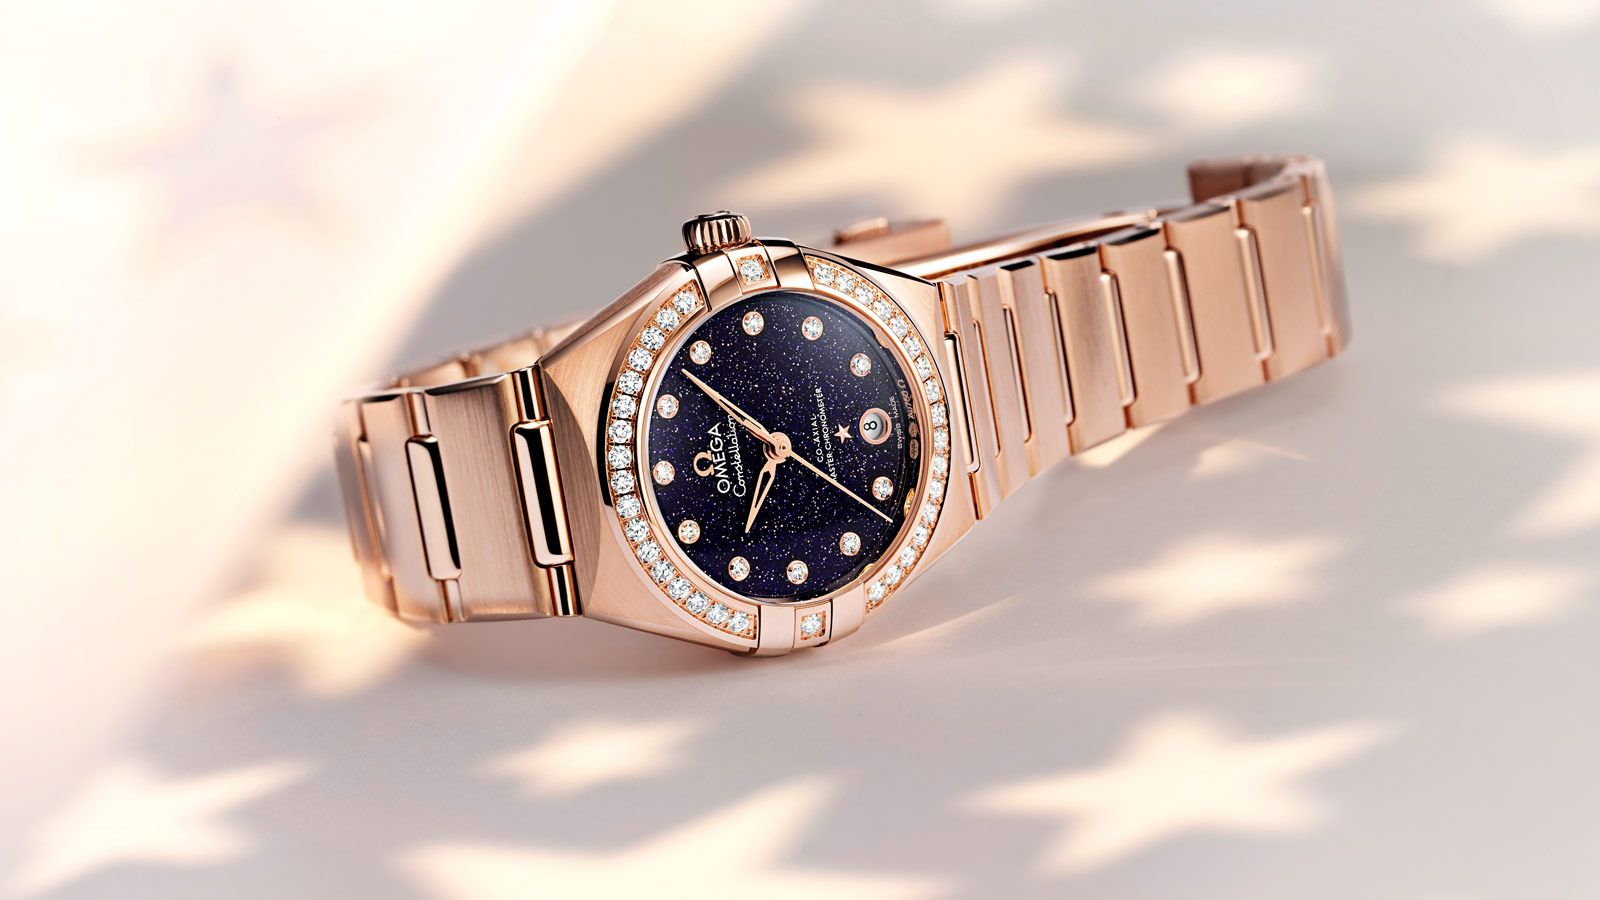 Constellation Constellation Constellation OMEGA Co‑Axial Master Chronometer 29 mm - 131.55.29.20.53.003 - Visualizzare 1